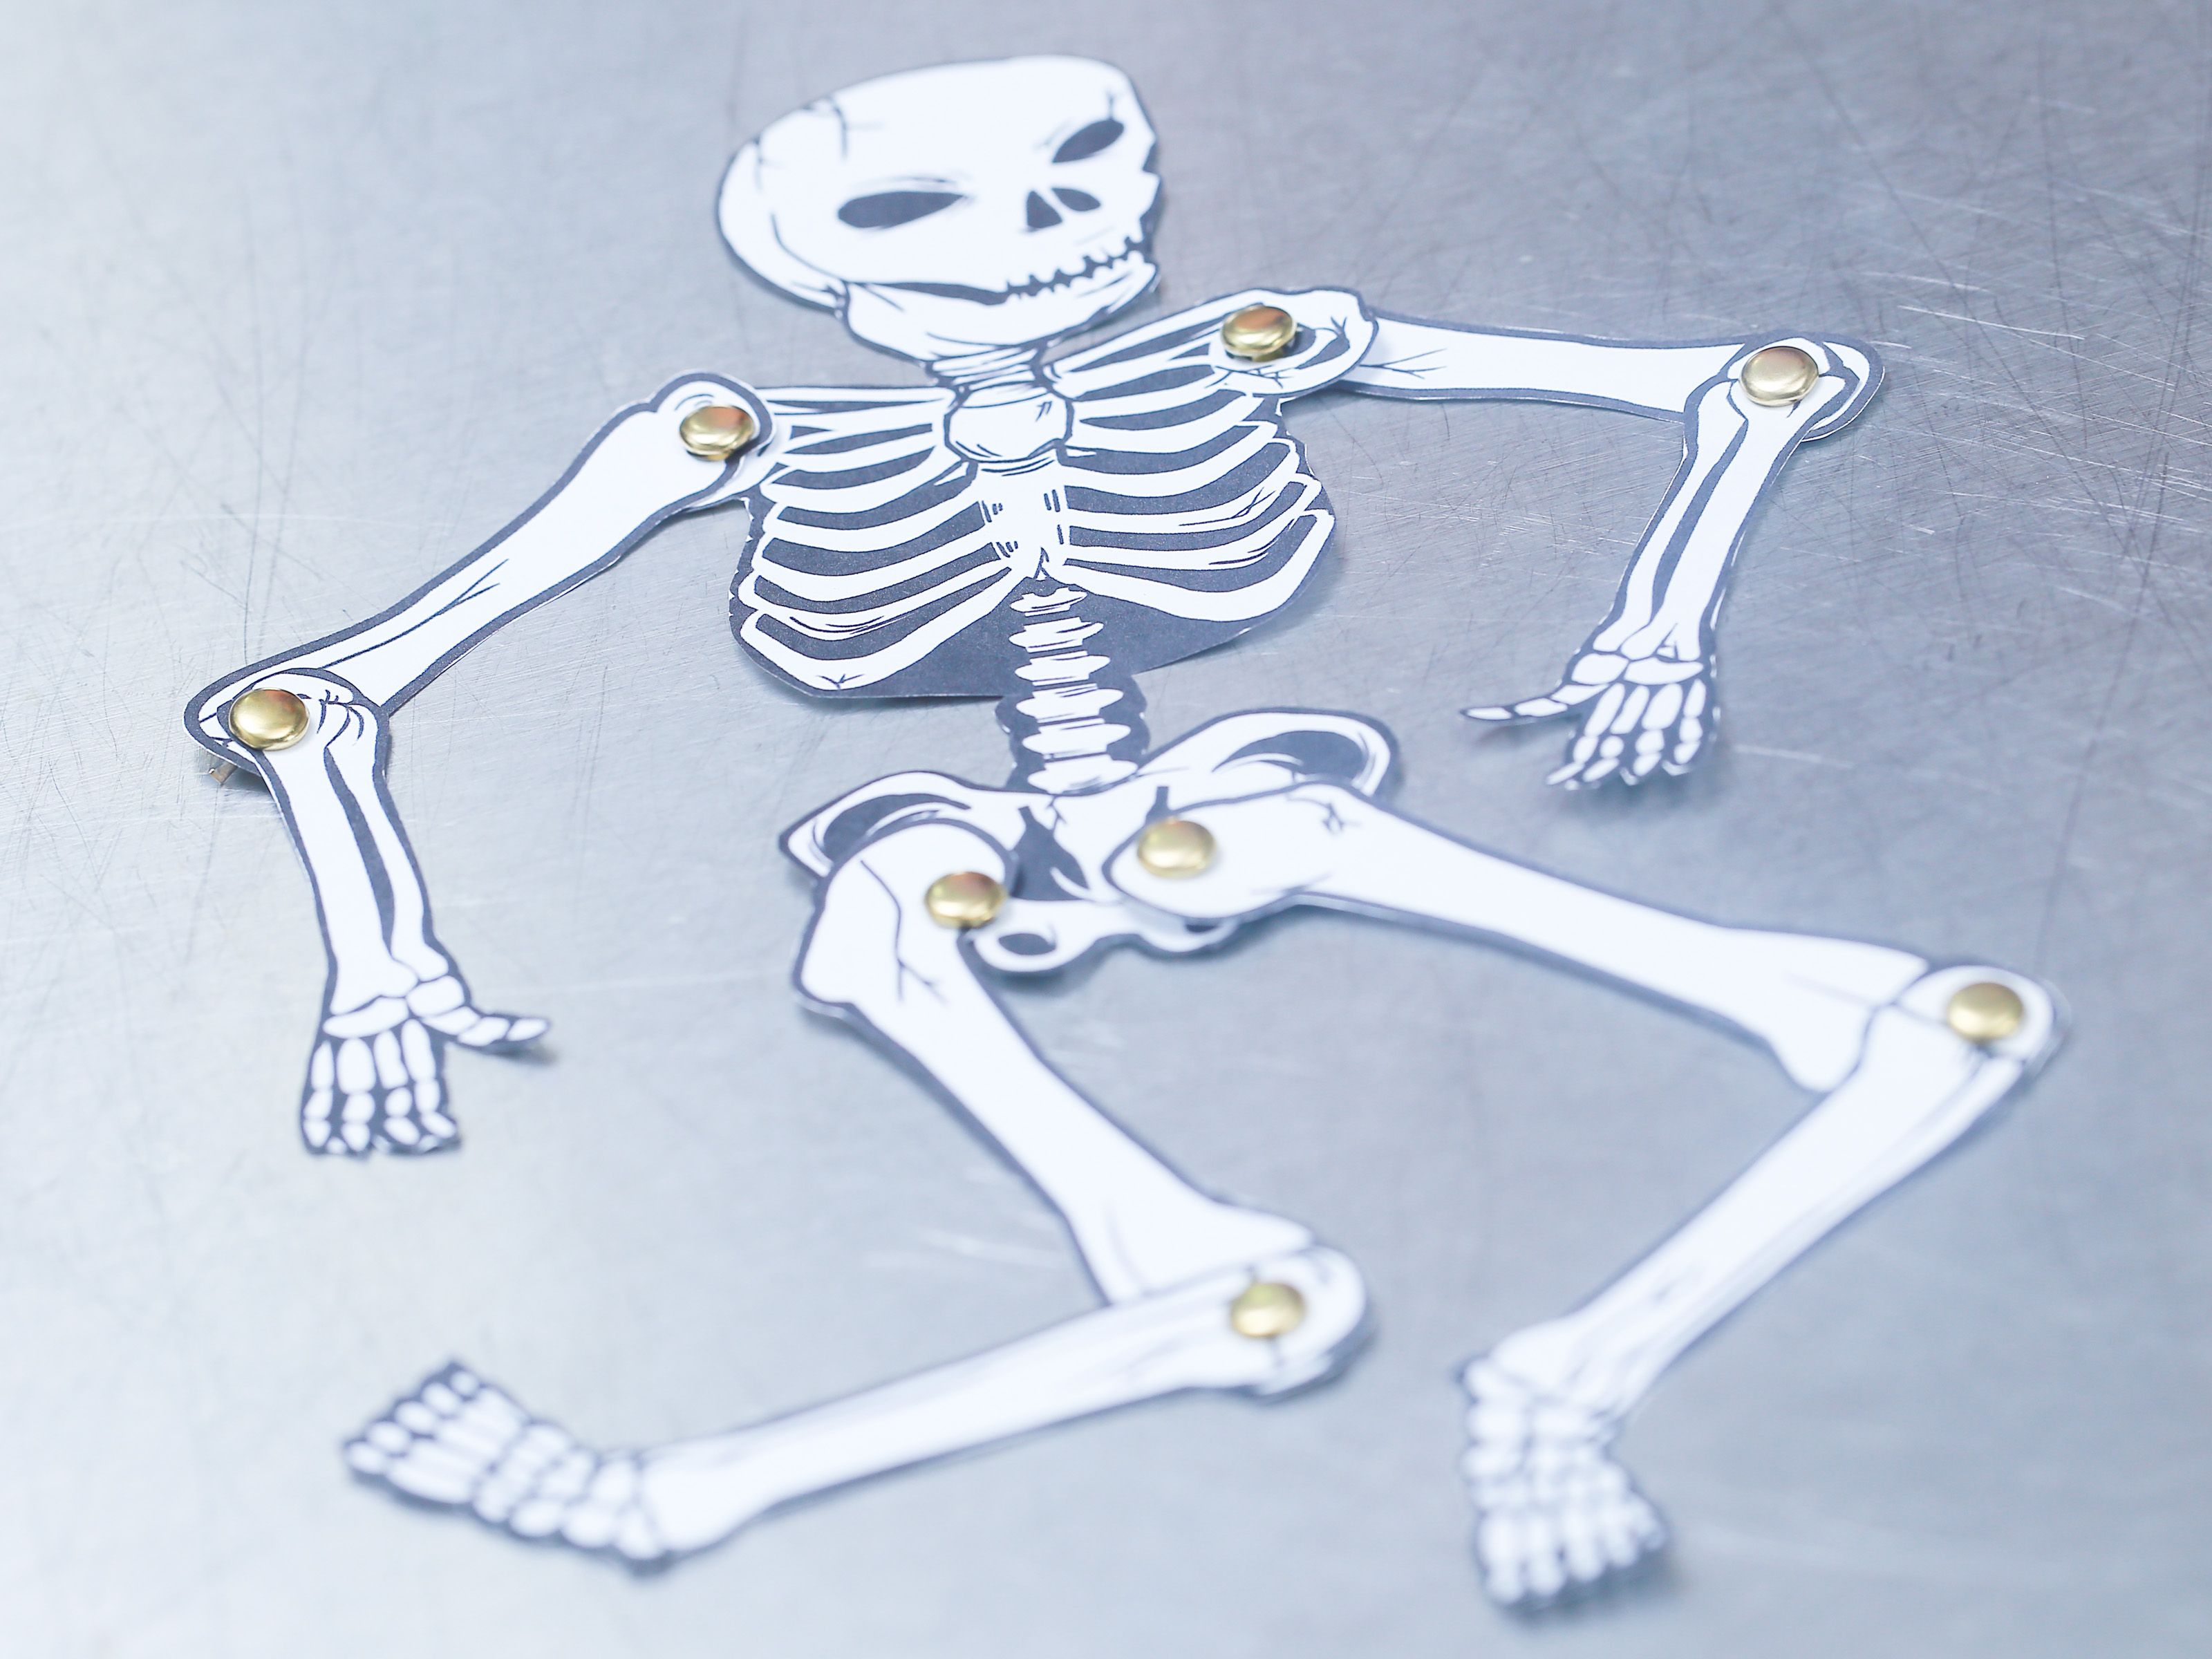 medium resolution of How to Make a Human Skeleton out of Paper   Human skeleton